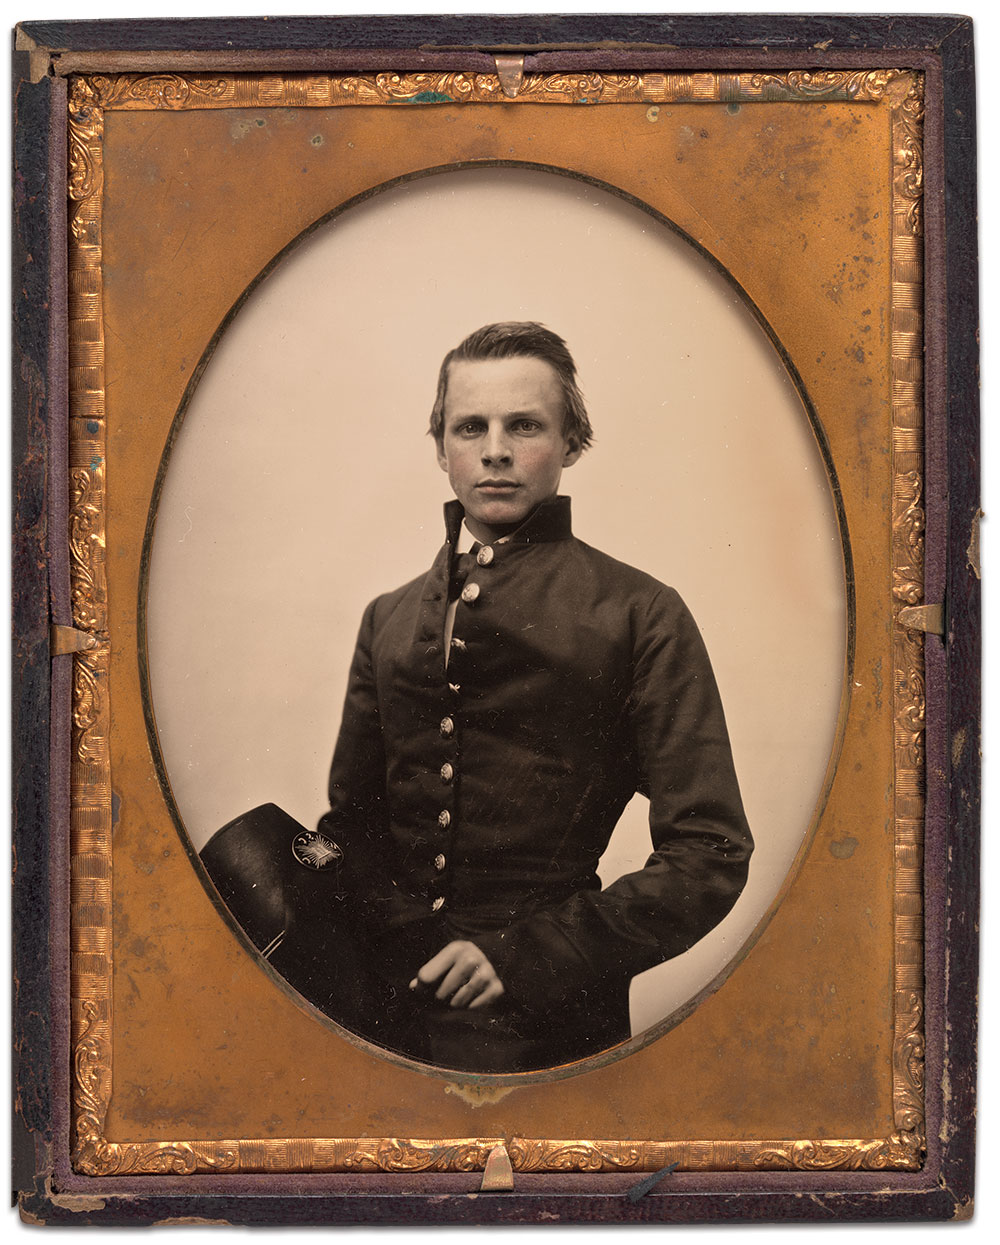 """Half-plate ambrotype by Mathew B. Brady of New York City. National Portrait Gallery Collection. This image is currently on display in a new exhibit, """"Antebellum Portraits by Mathew Brady,"""" at the Smithsonian Institution's National Portrait Gallery in Washington, D.C., through June 3, 2018."""